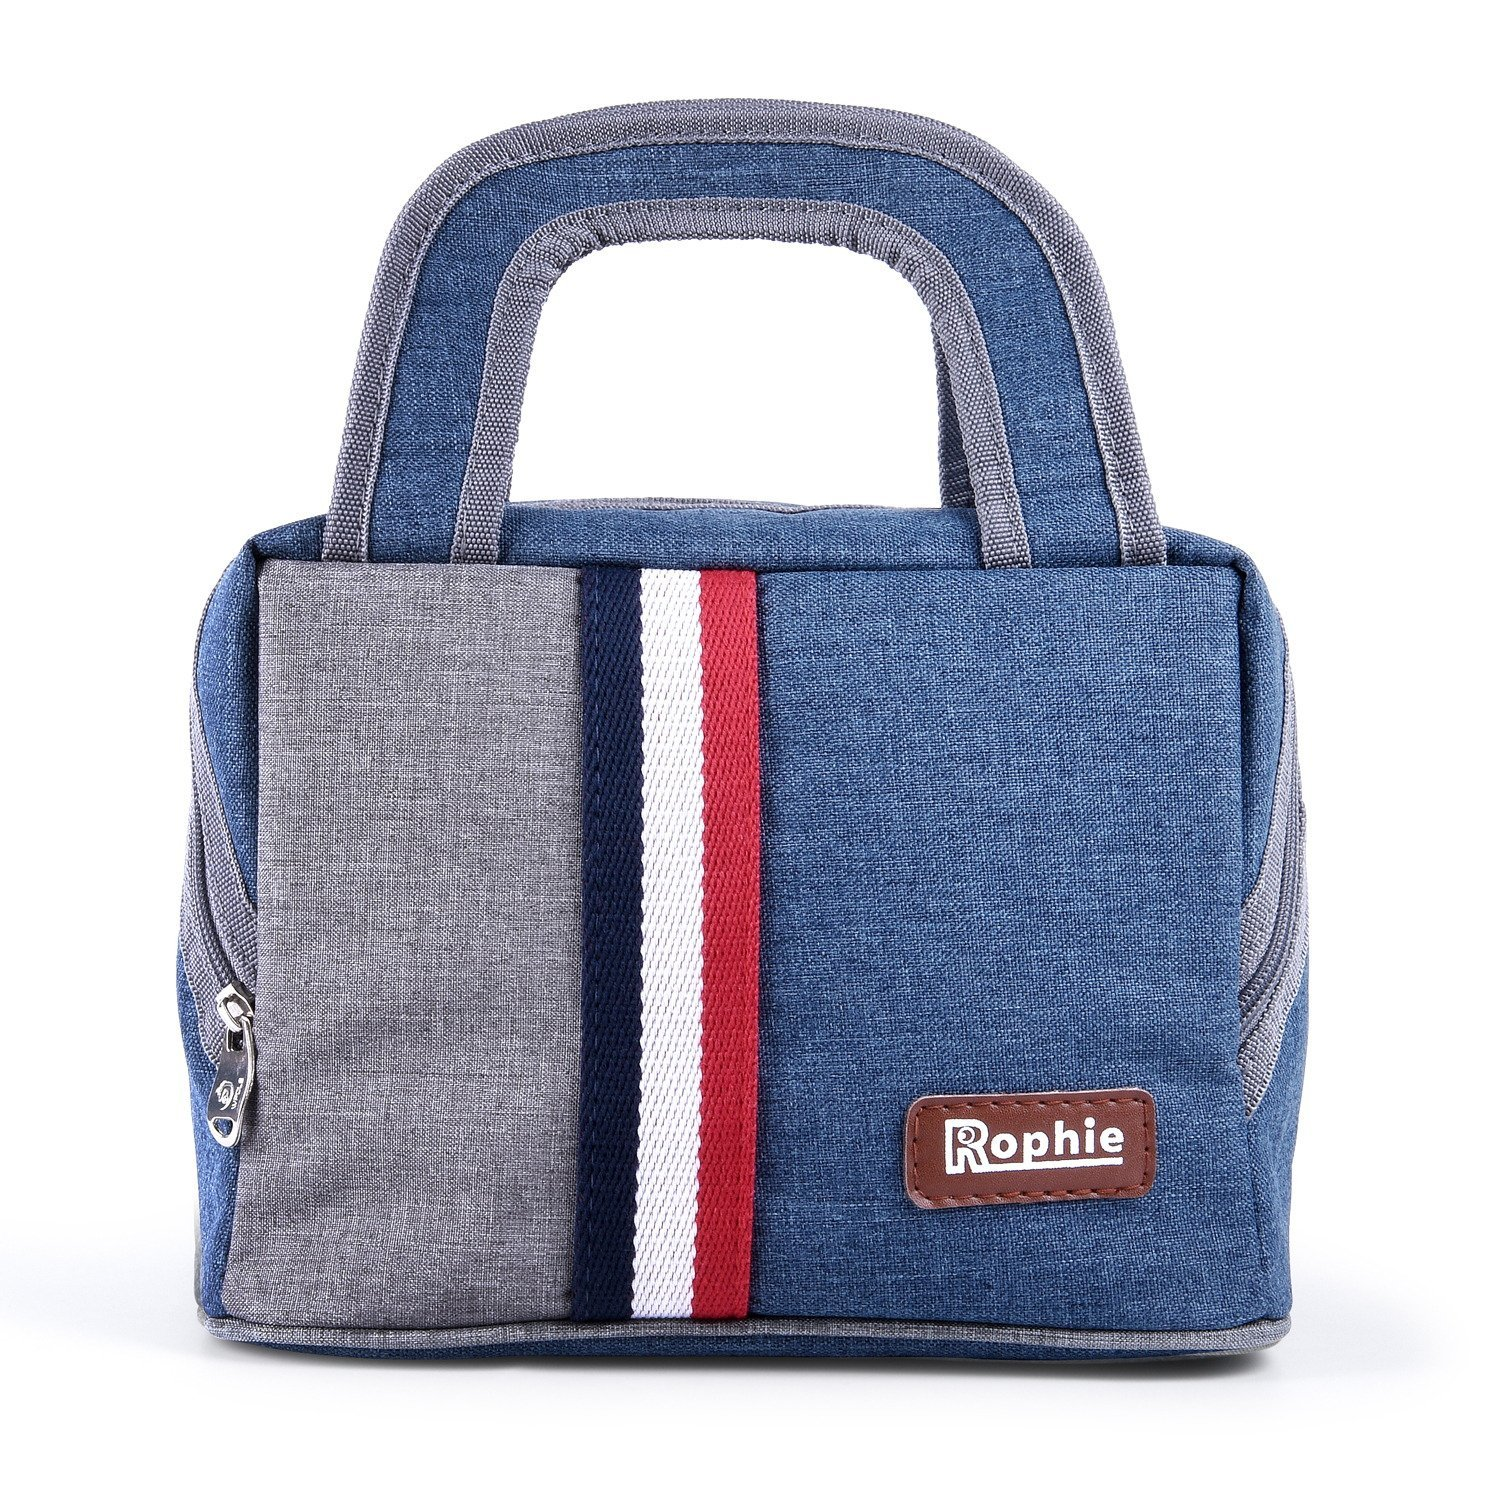 Insulated Lunch Bag, Rophie Reusable Outdoor Byo Lunch Bag Travel Picnic School Bento Large Lunch Box Tote Bag for Women, Men and Kids (7.5L)